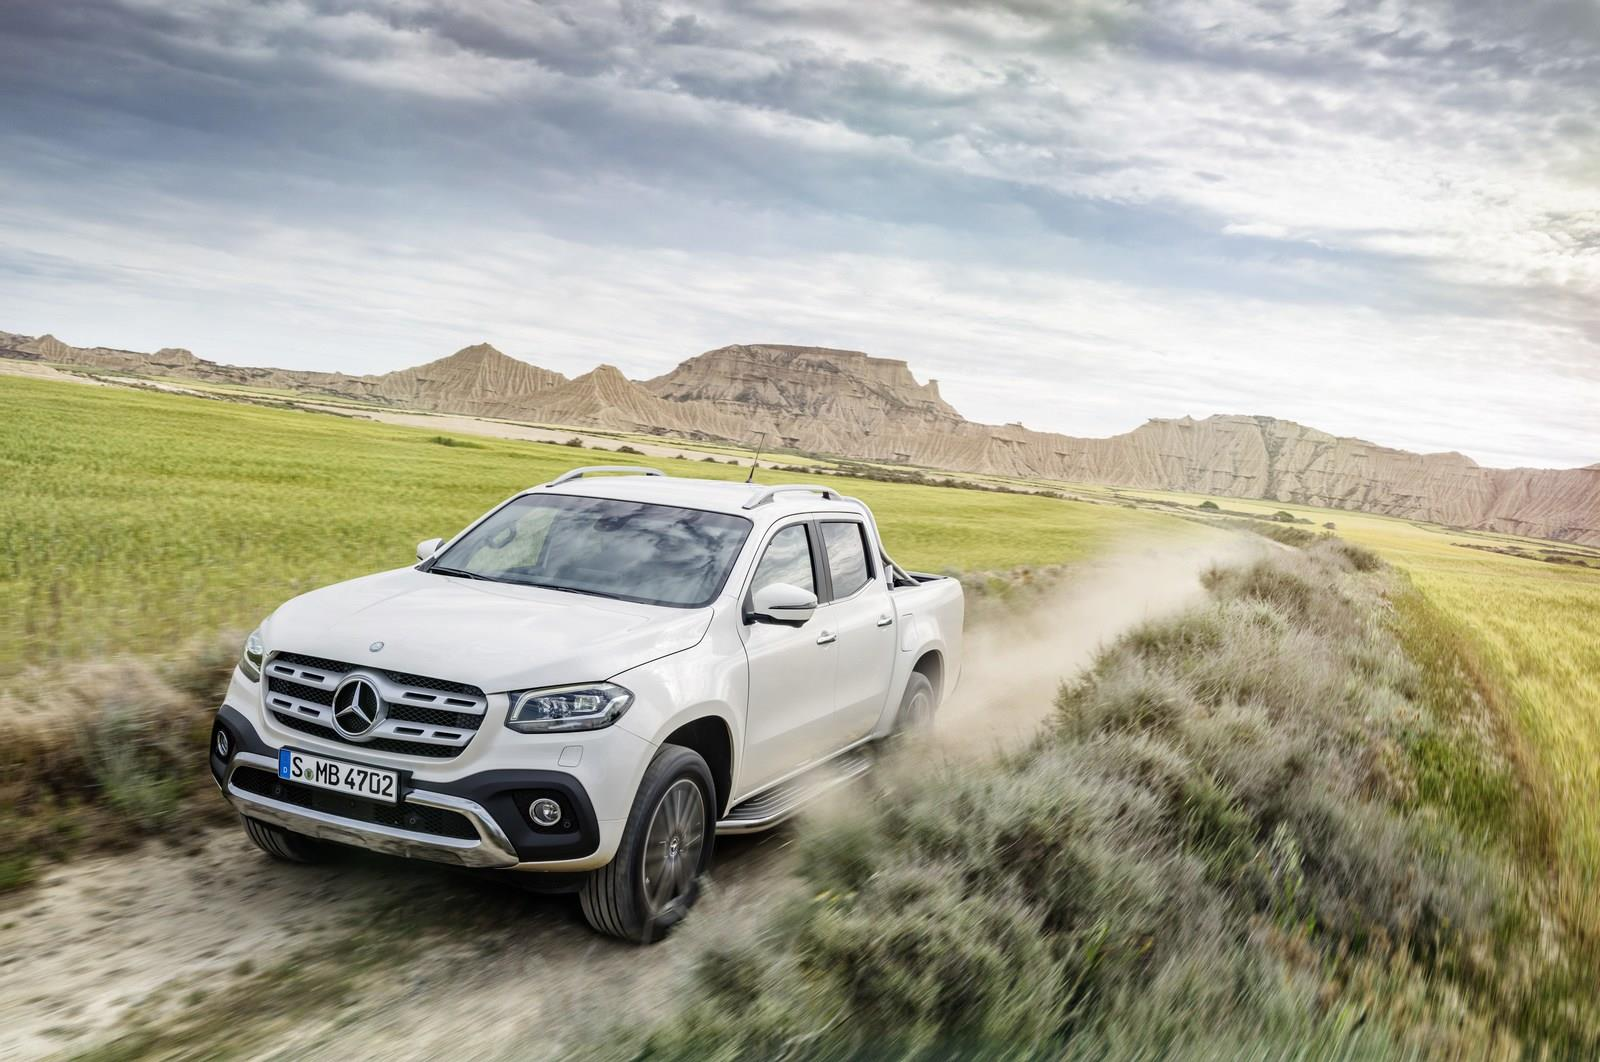 2018 Mercedes X-Class pickup image gallery